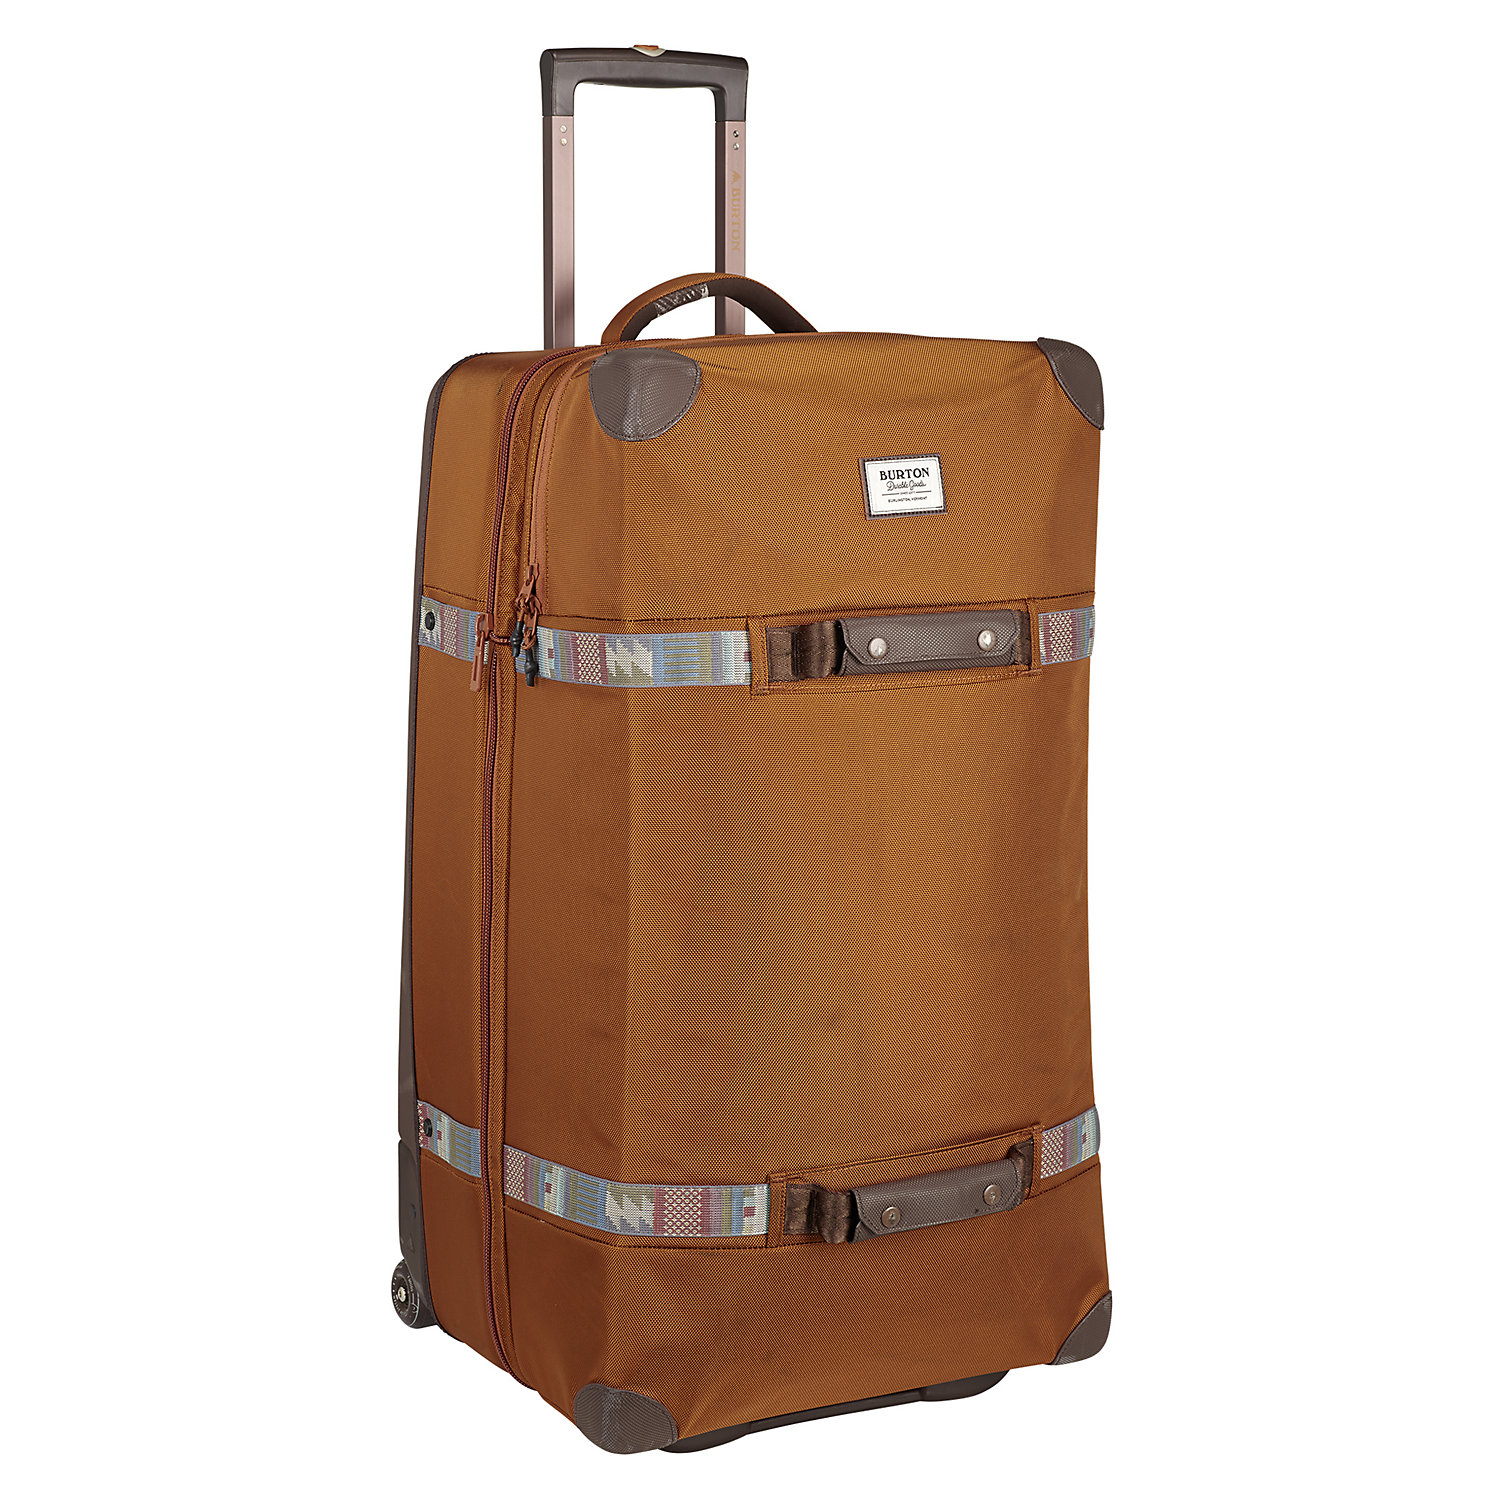 e9b5325c6a Burton Wheelie Sub Travel Bag - Moosejaw